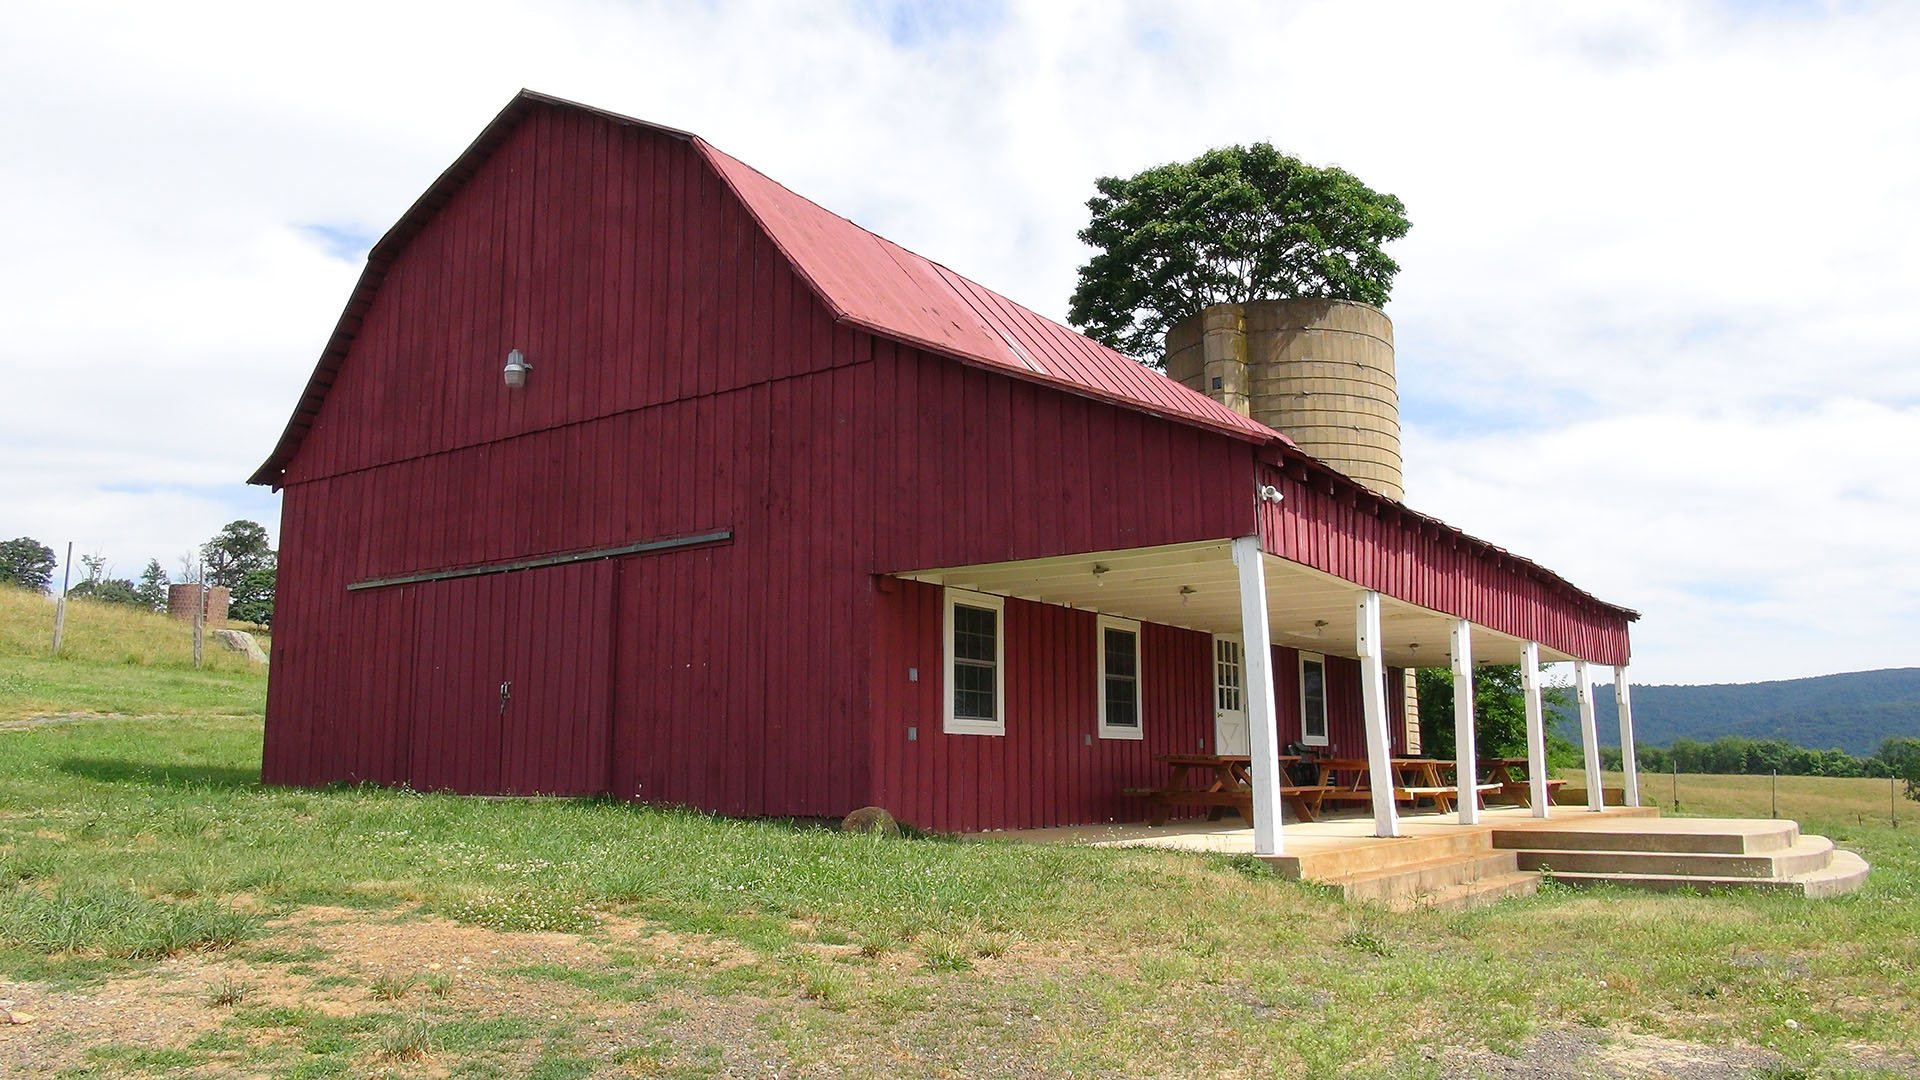 Valley View Farms Red Barn side view